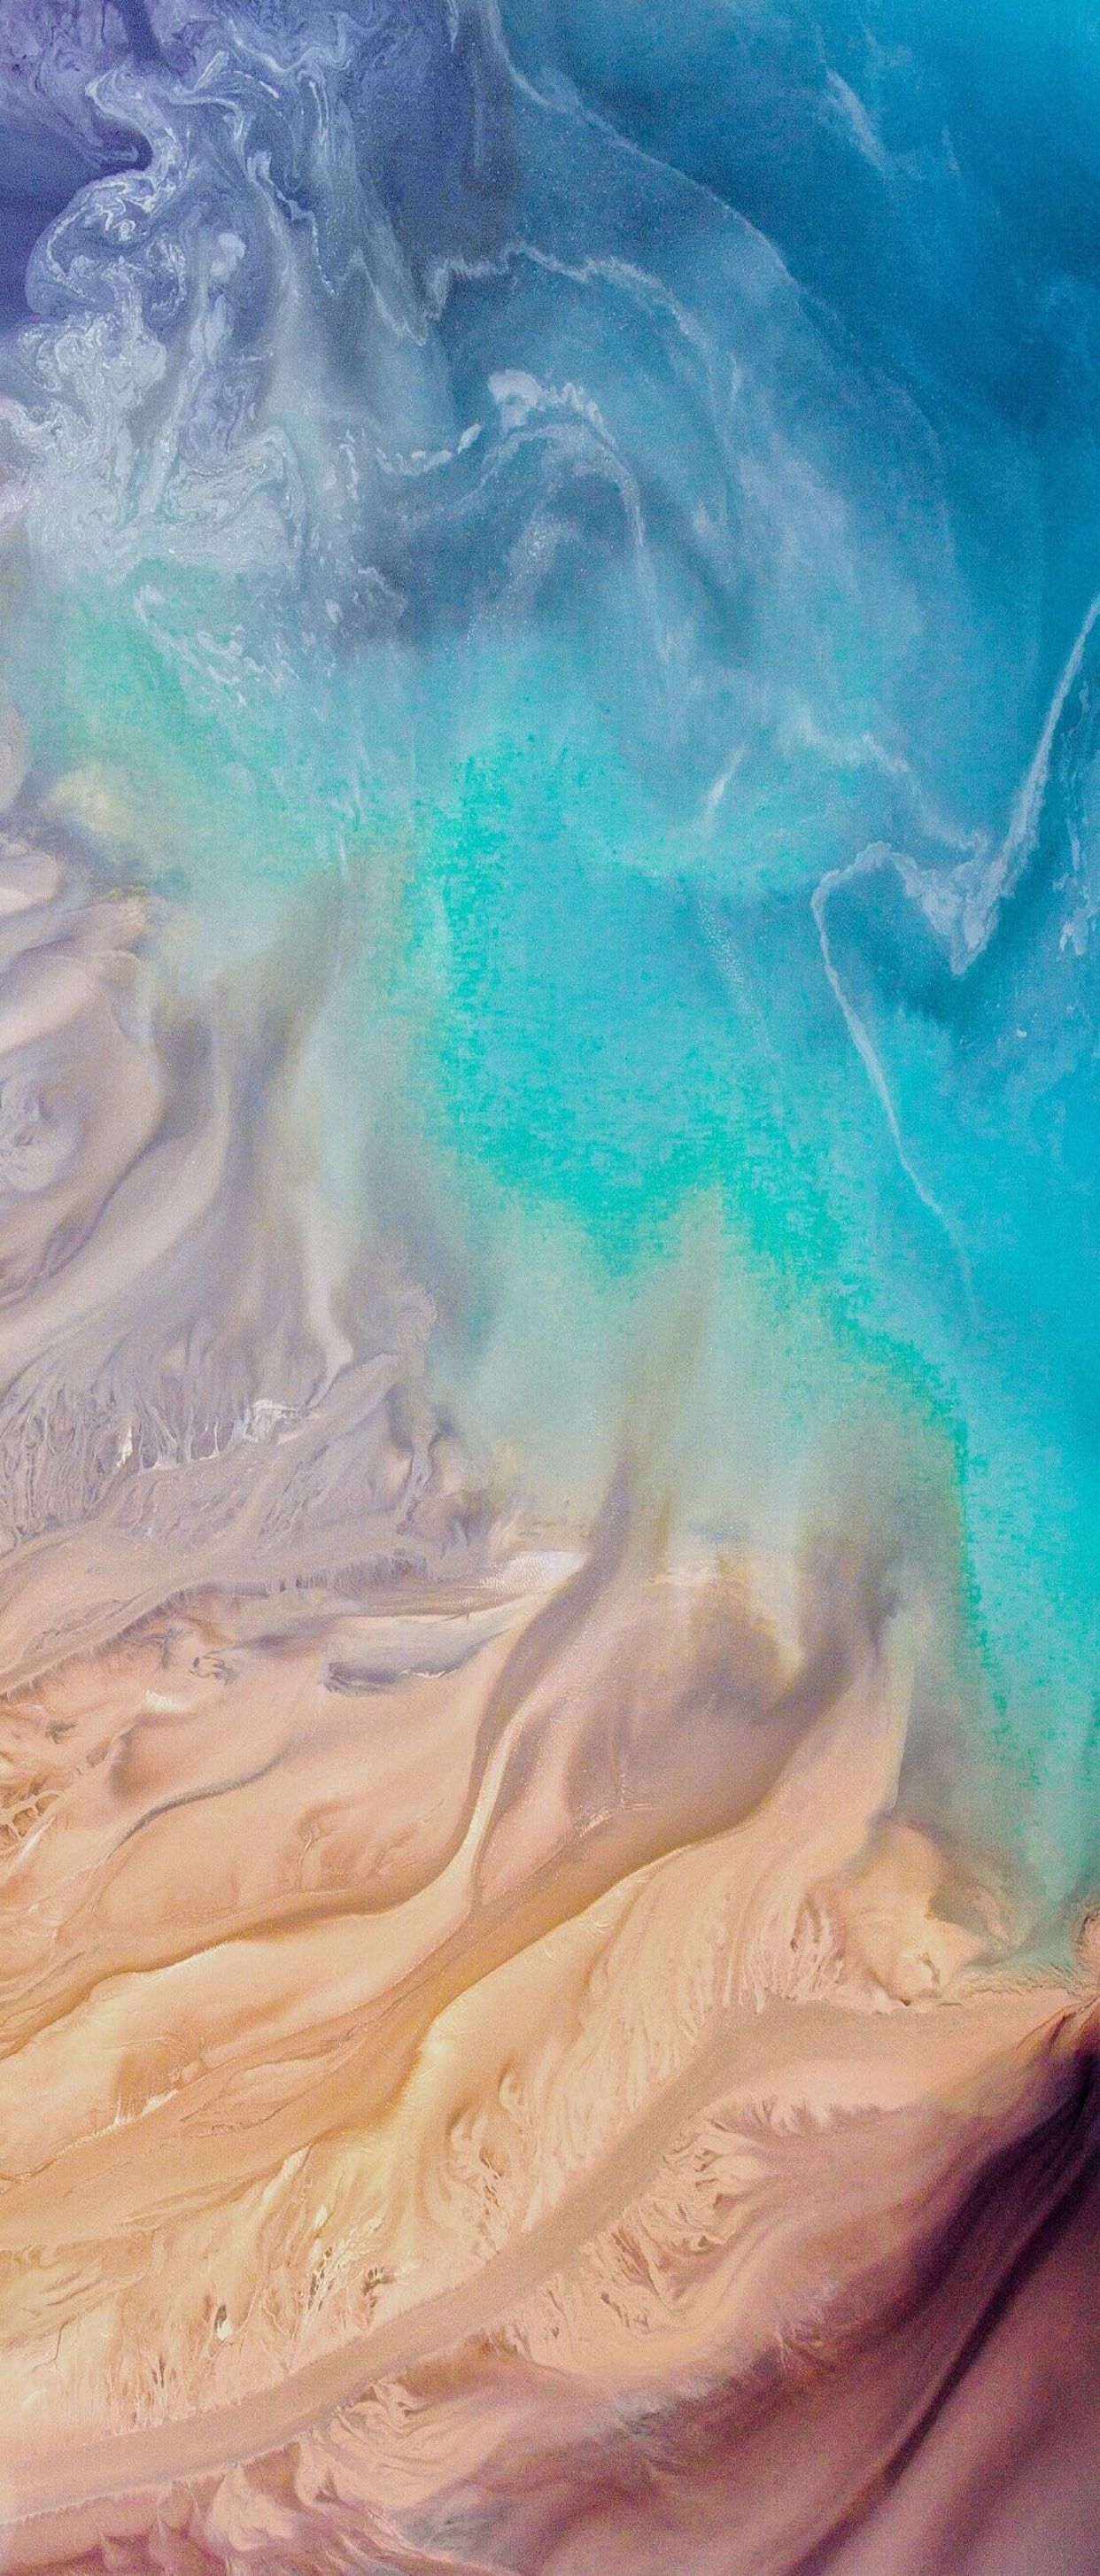 iOS 11, iPhone X, Aqua, blue, Water, beach, wave, ocean